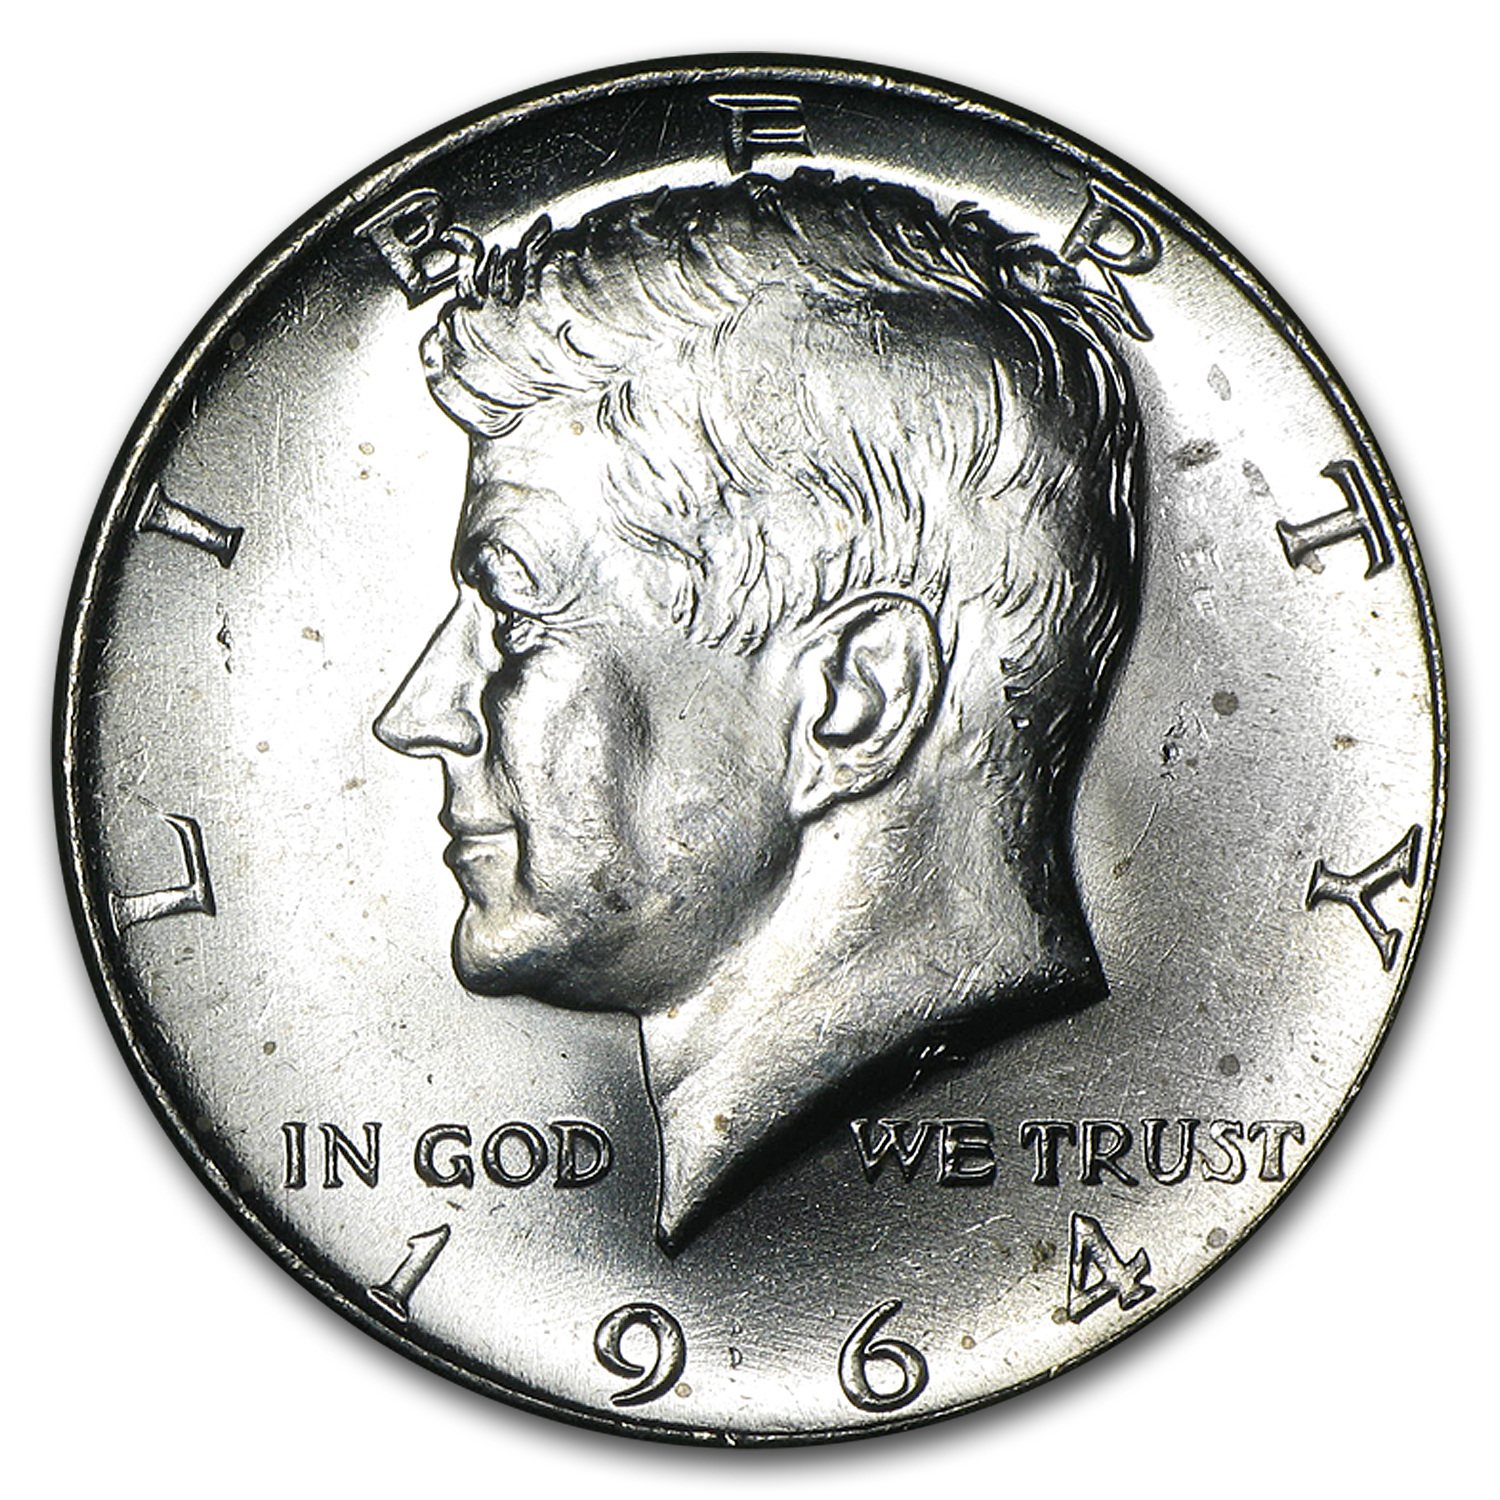 90% Silver Kennedy Halves $10 20-Coin Roll BU (1964-P &/or D)